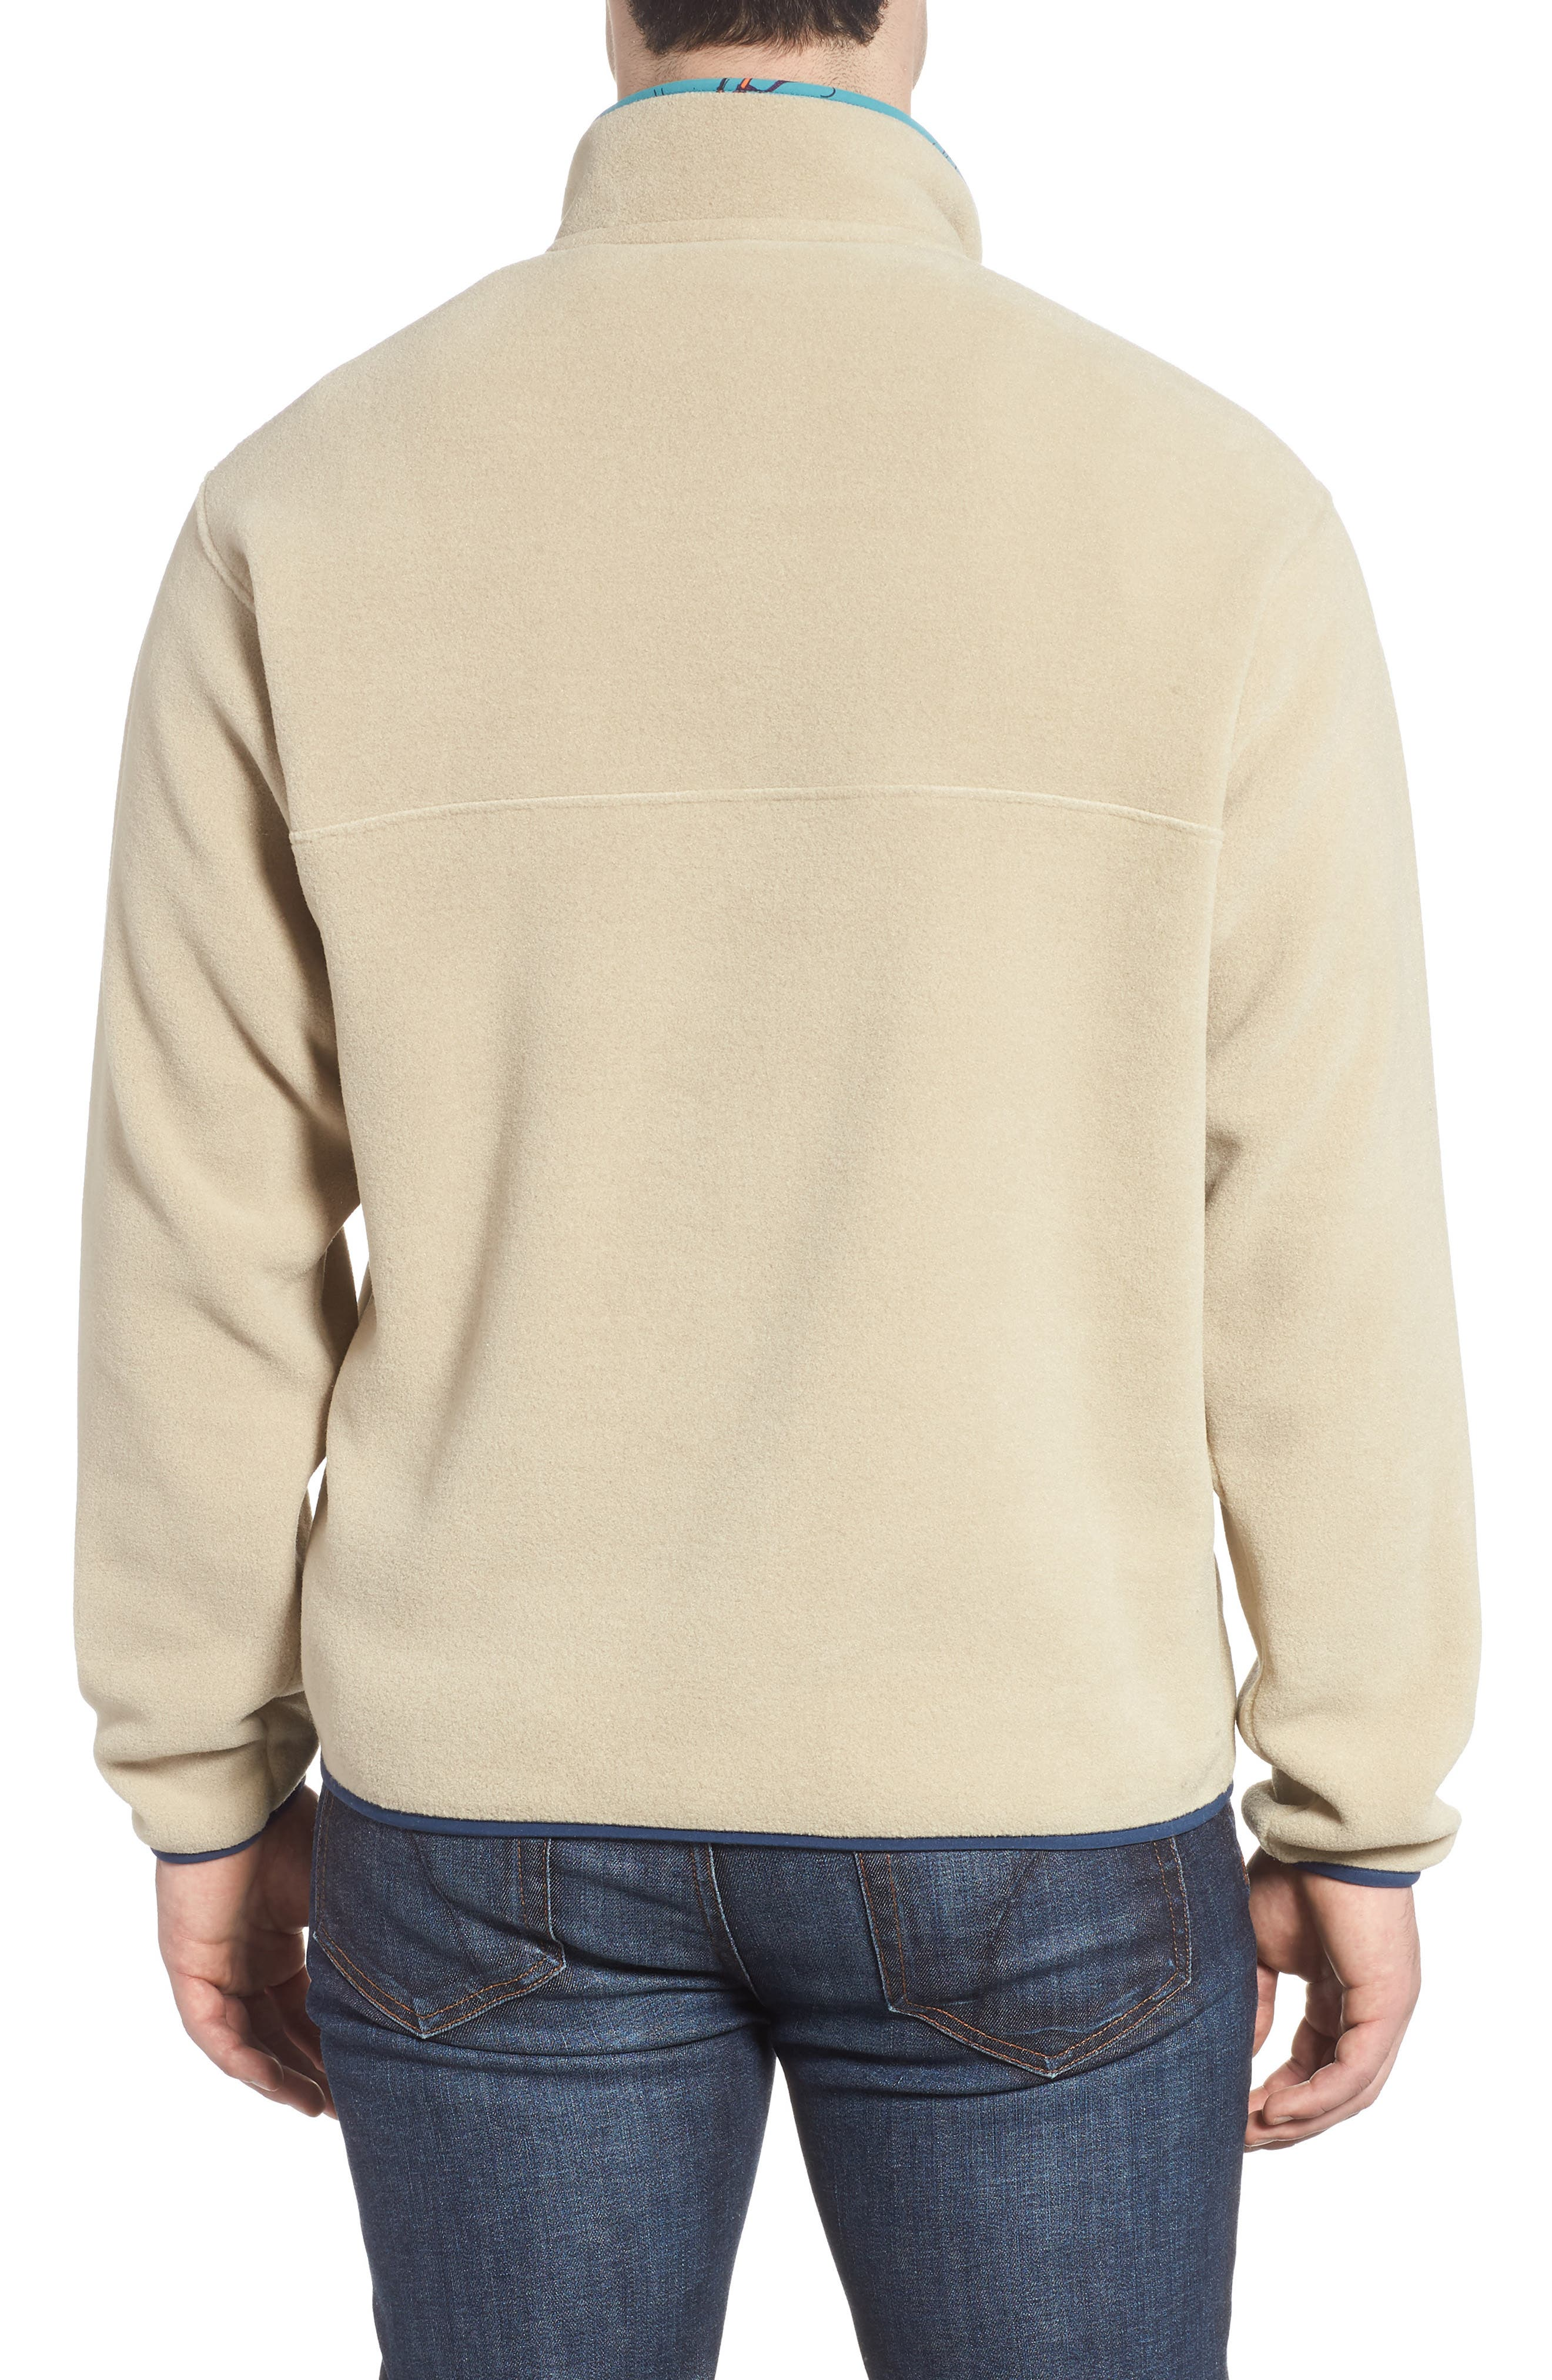 Synchilla<sup>®</sup> Snap-T<sup>®</sup> Fleece Pullover,                             Alternate thumbnail 2, color,                             255